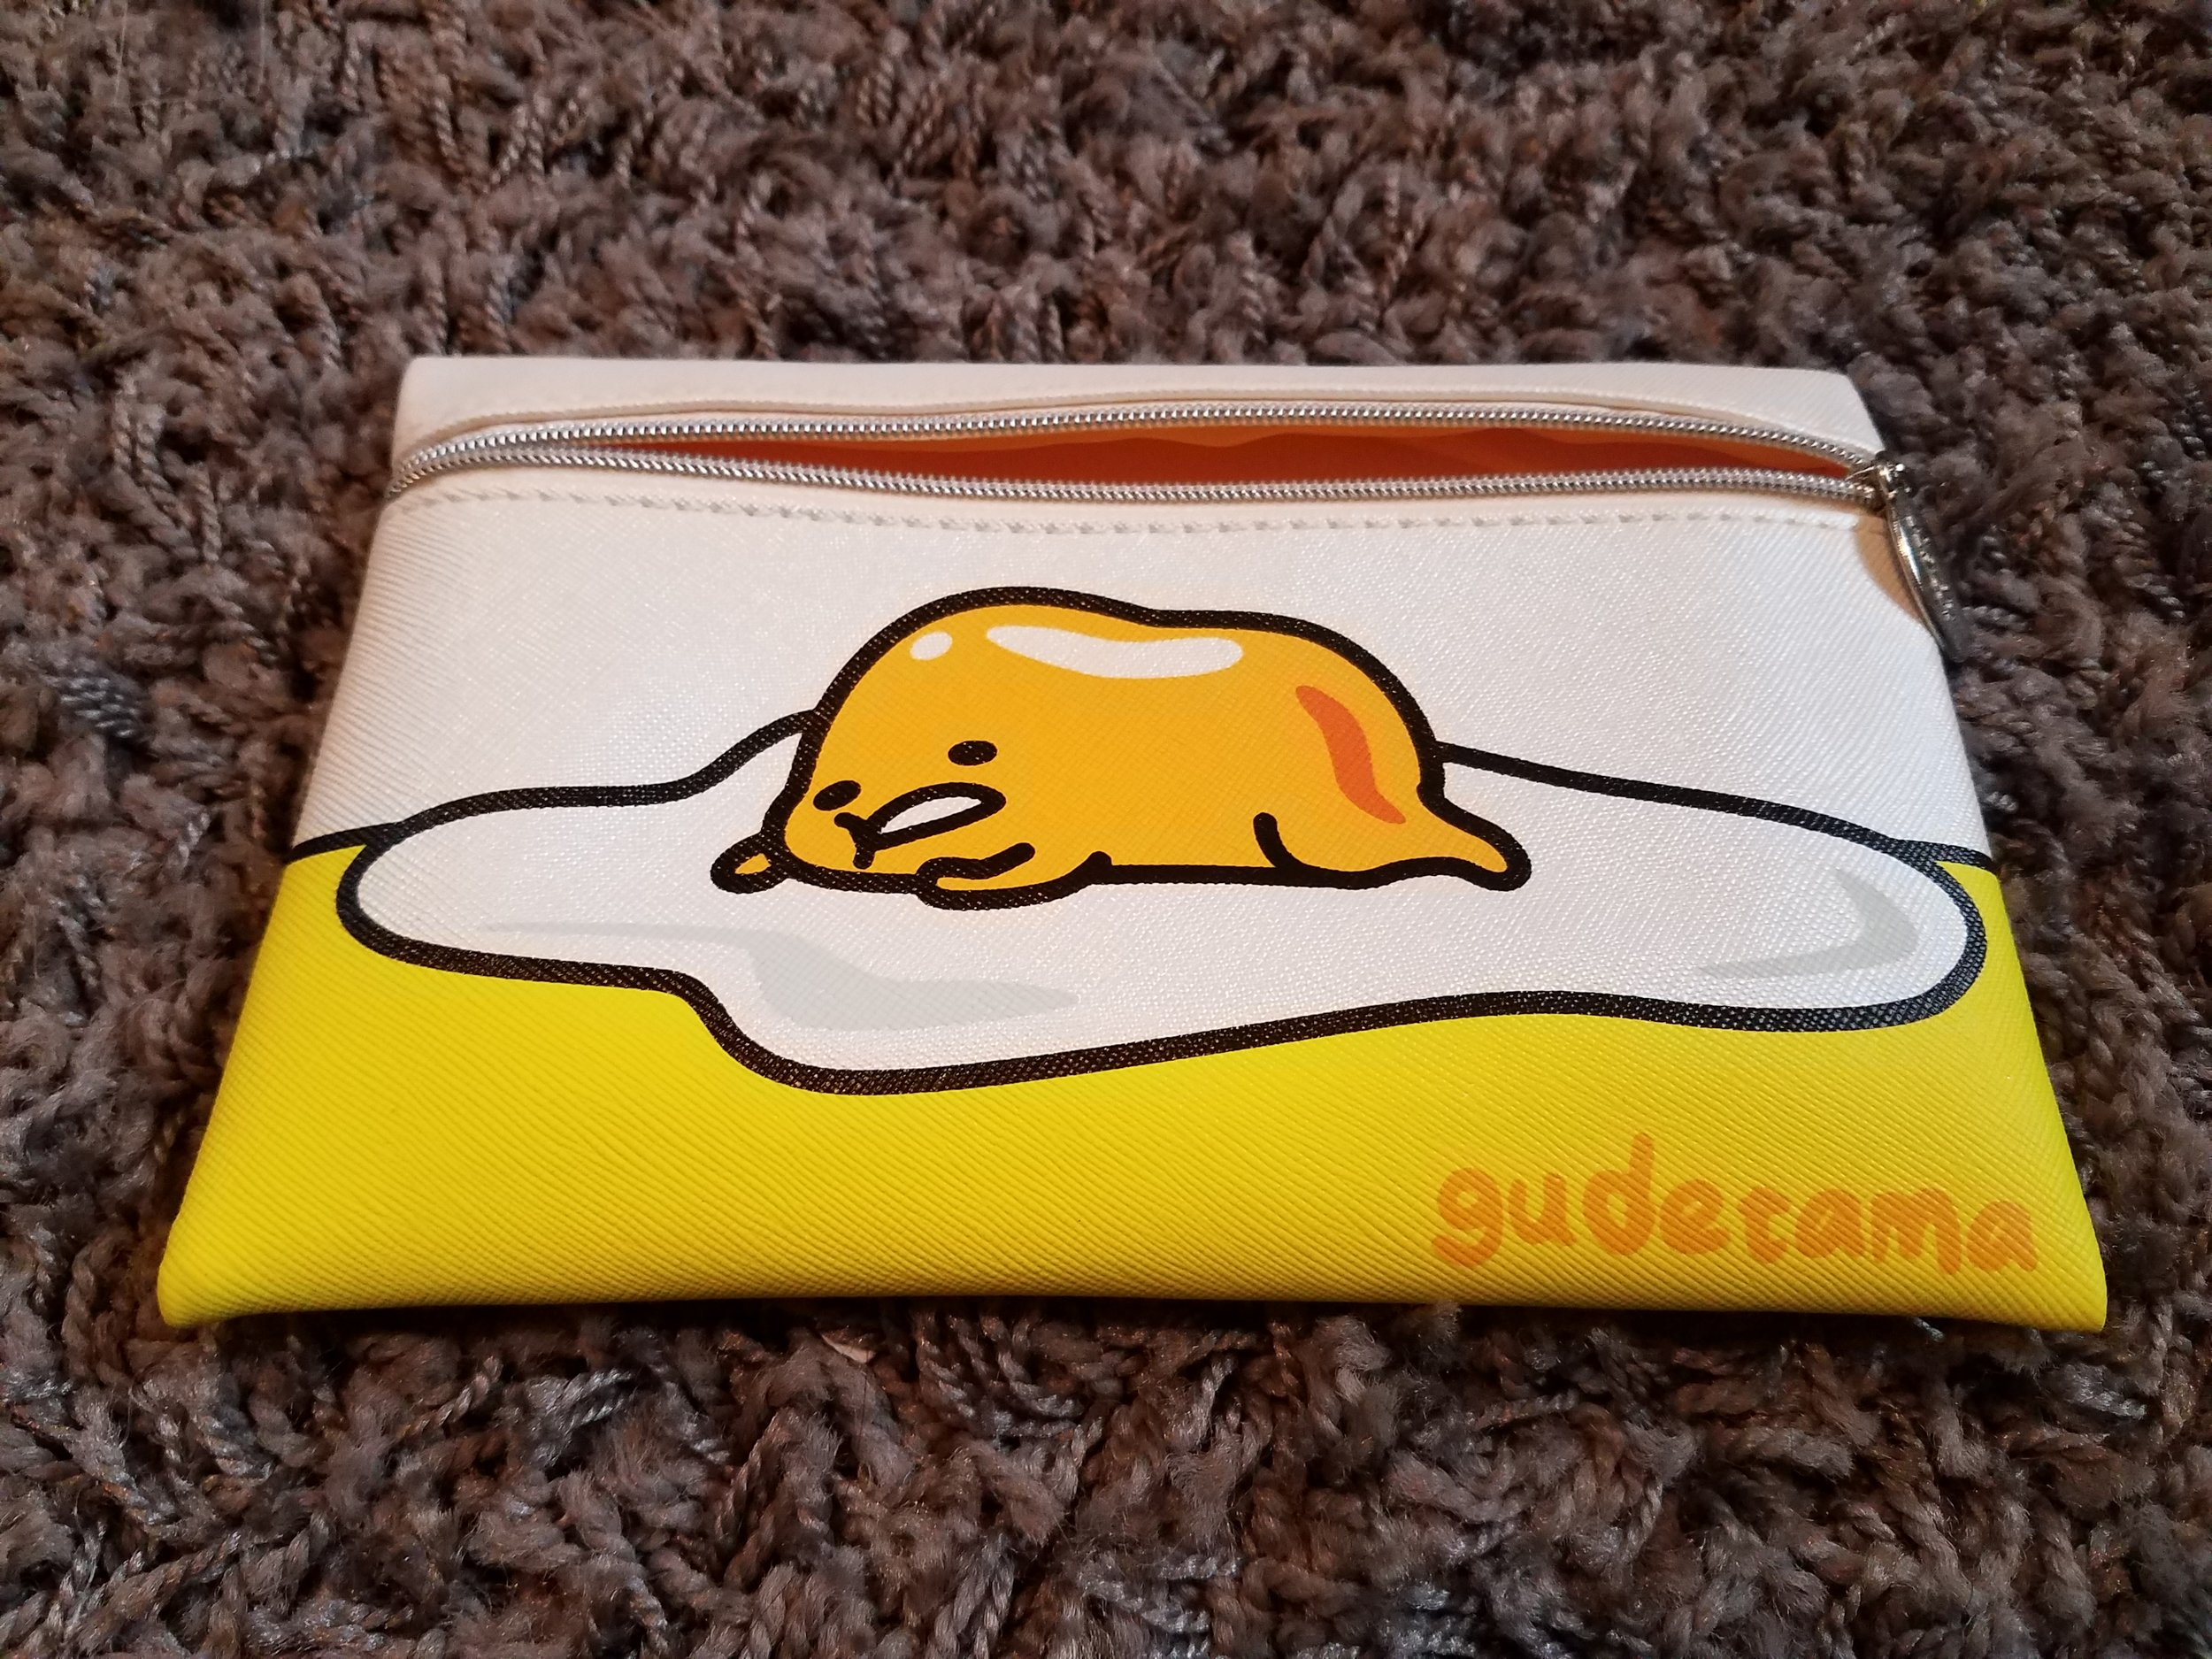 The front of bag features Gudetama in all his lazy glory